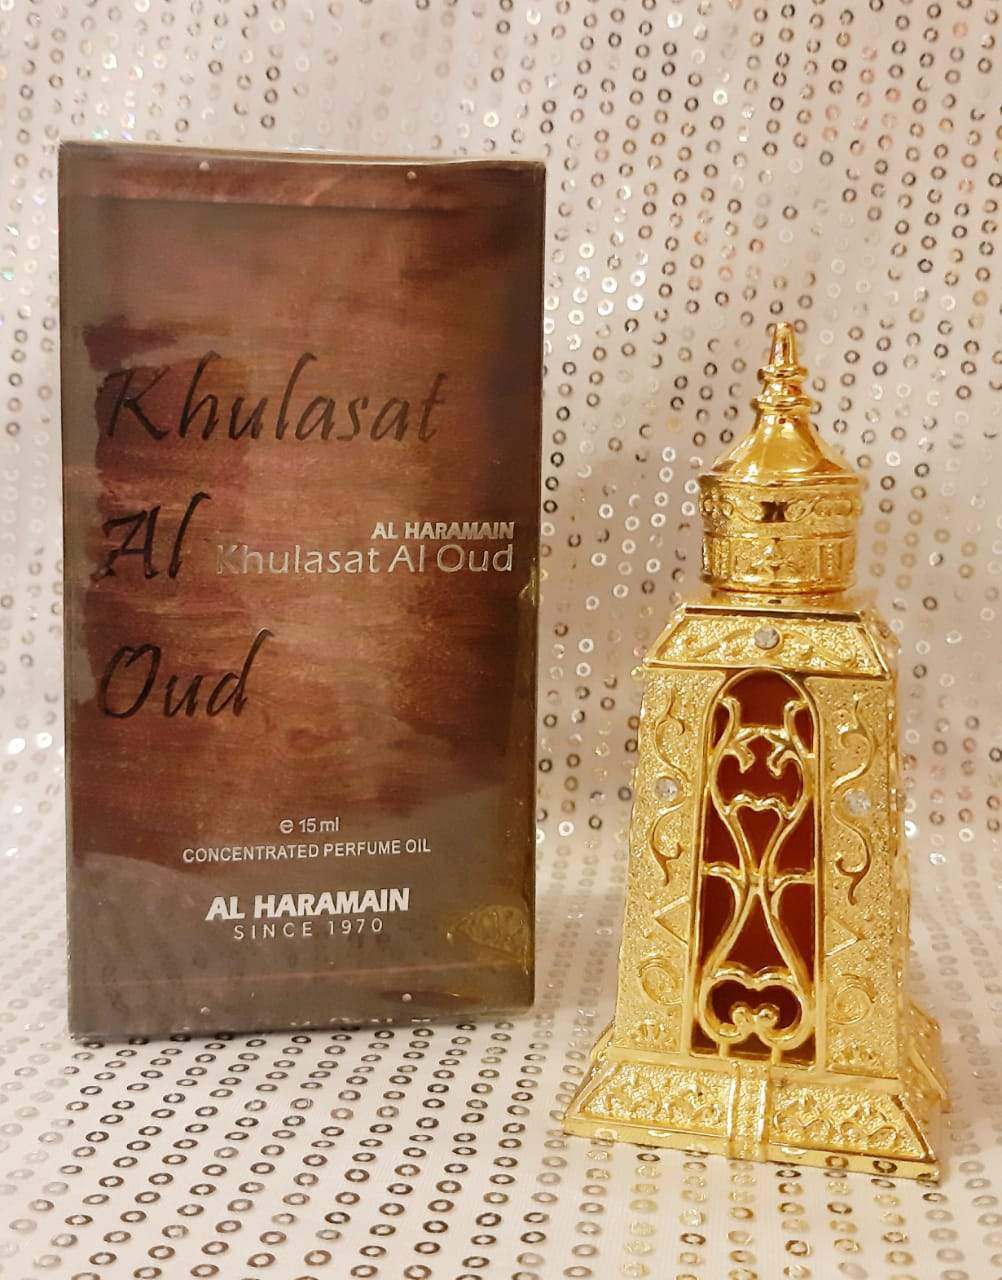 Al Haramain Khulasat al oudh Synthetic Attar Pure Imported Synthetic Attar Perfume 15ml (U A E  Dubai)